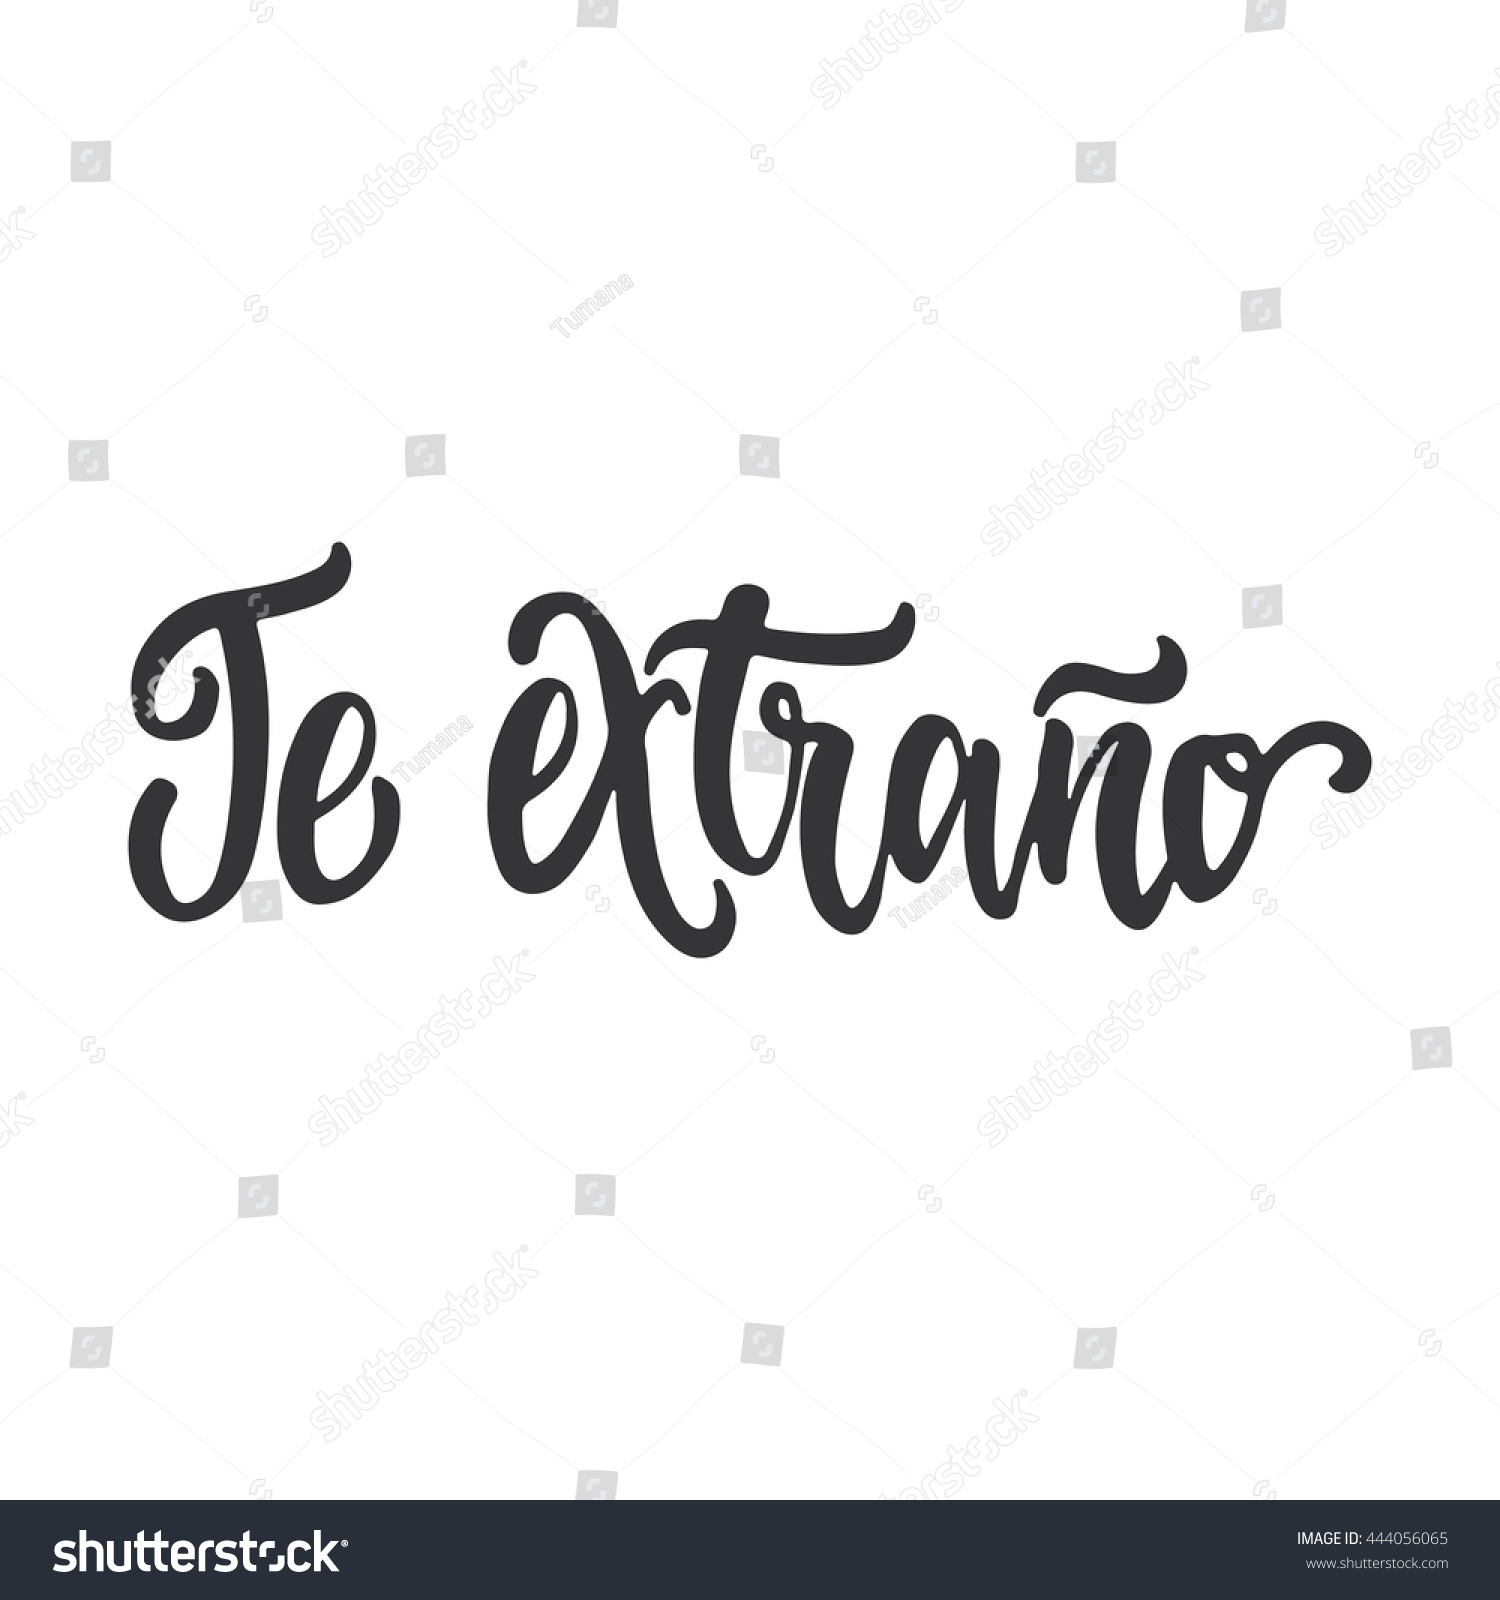 Te extrano miss you lettering calligraphy stock vector 444056065 te extrano i miss you lettering calligraphy phrase in spanish handwritten text isolated altavistaventures Gallery